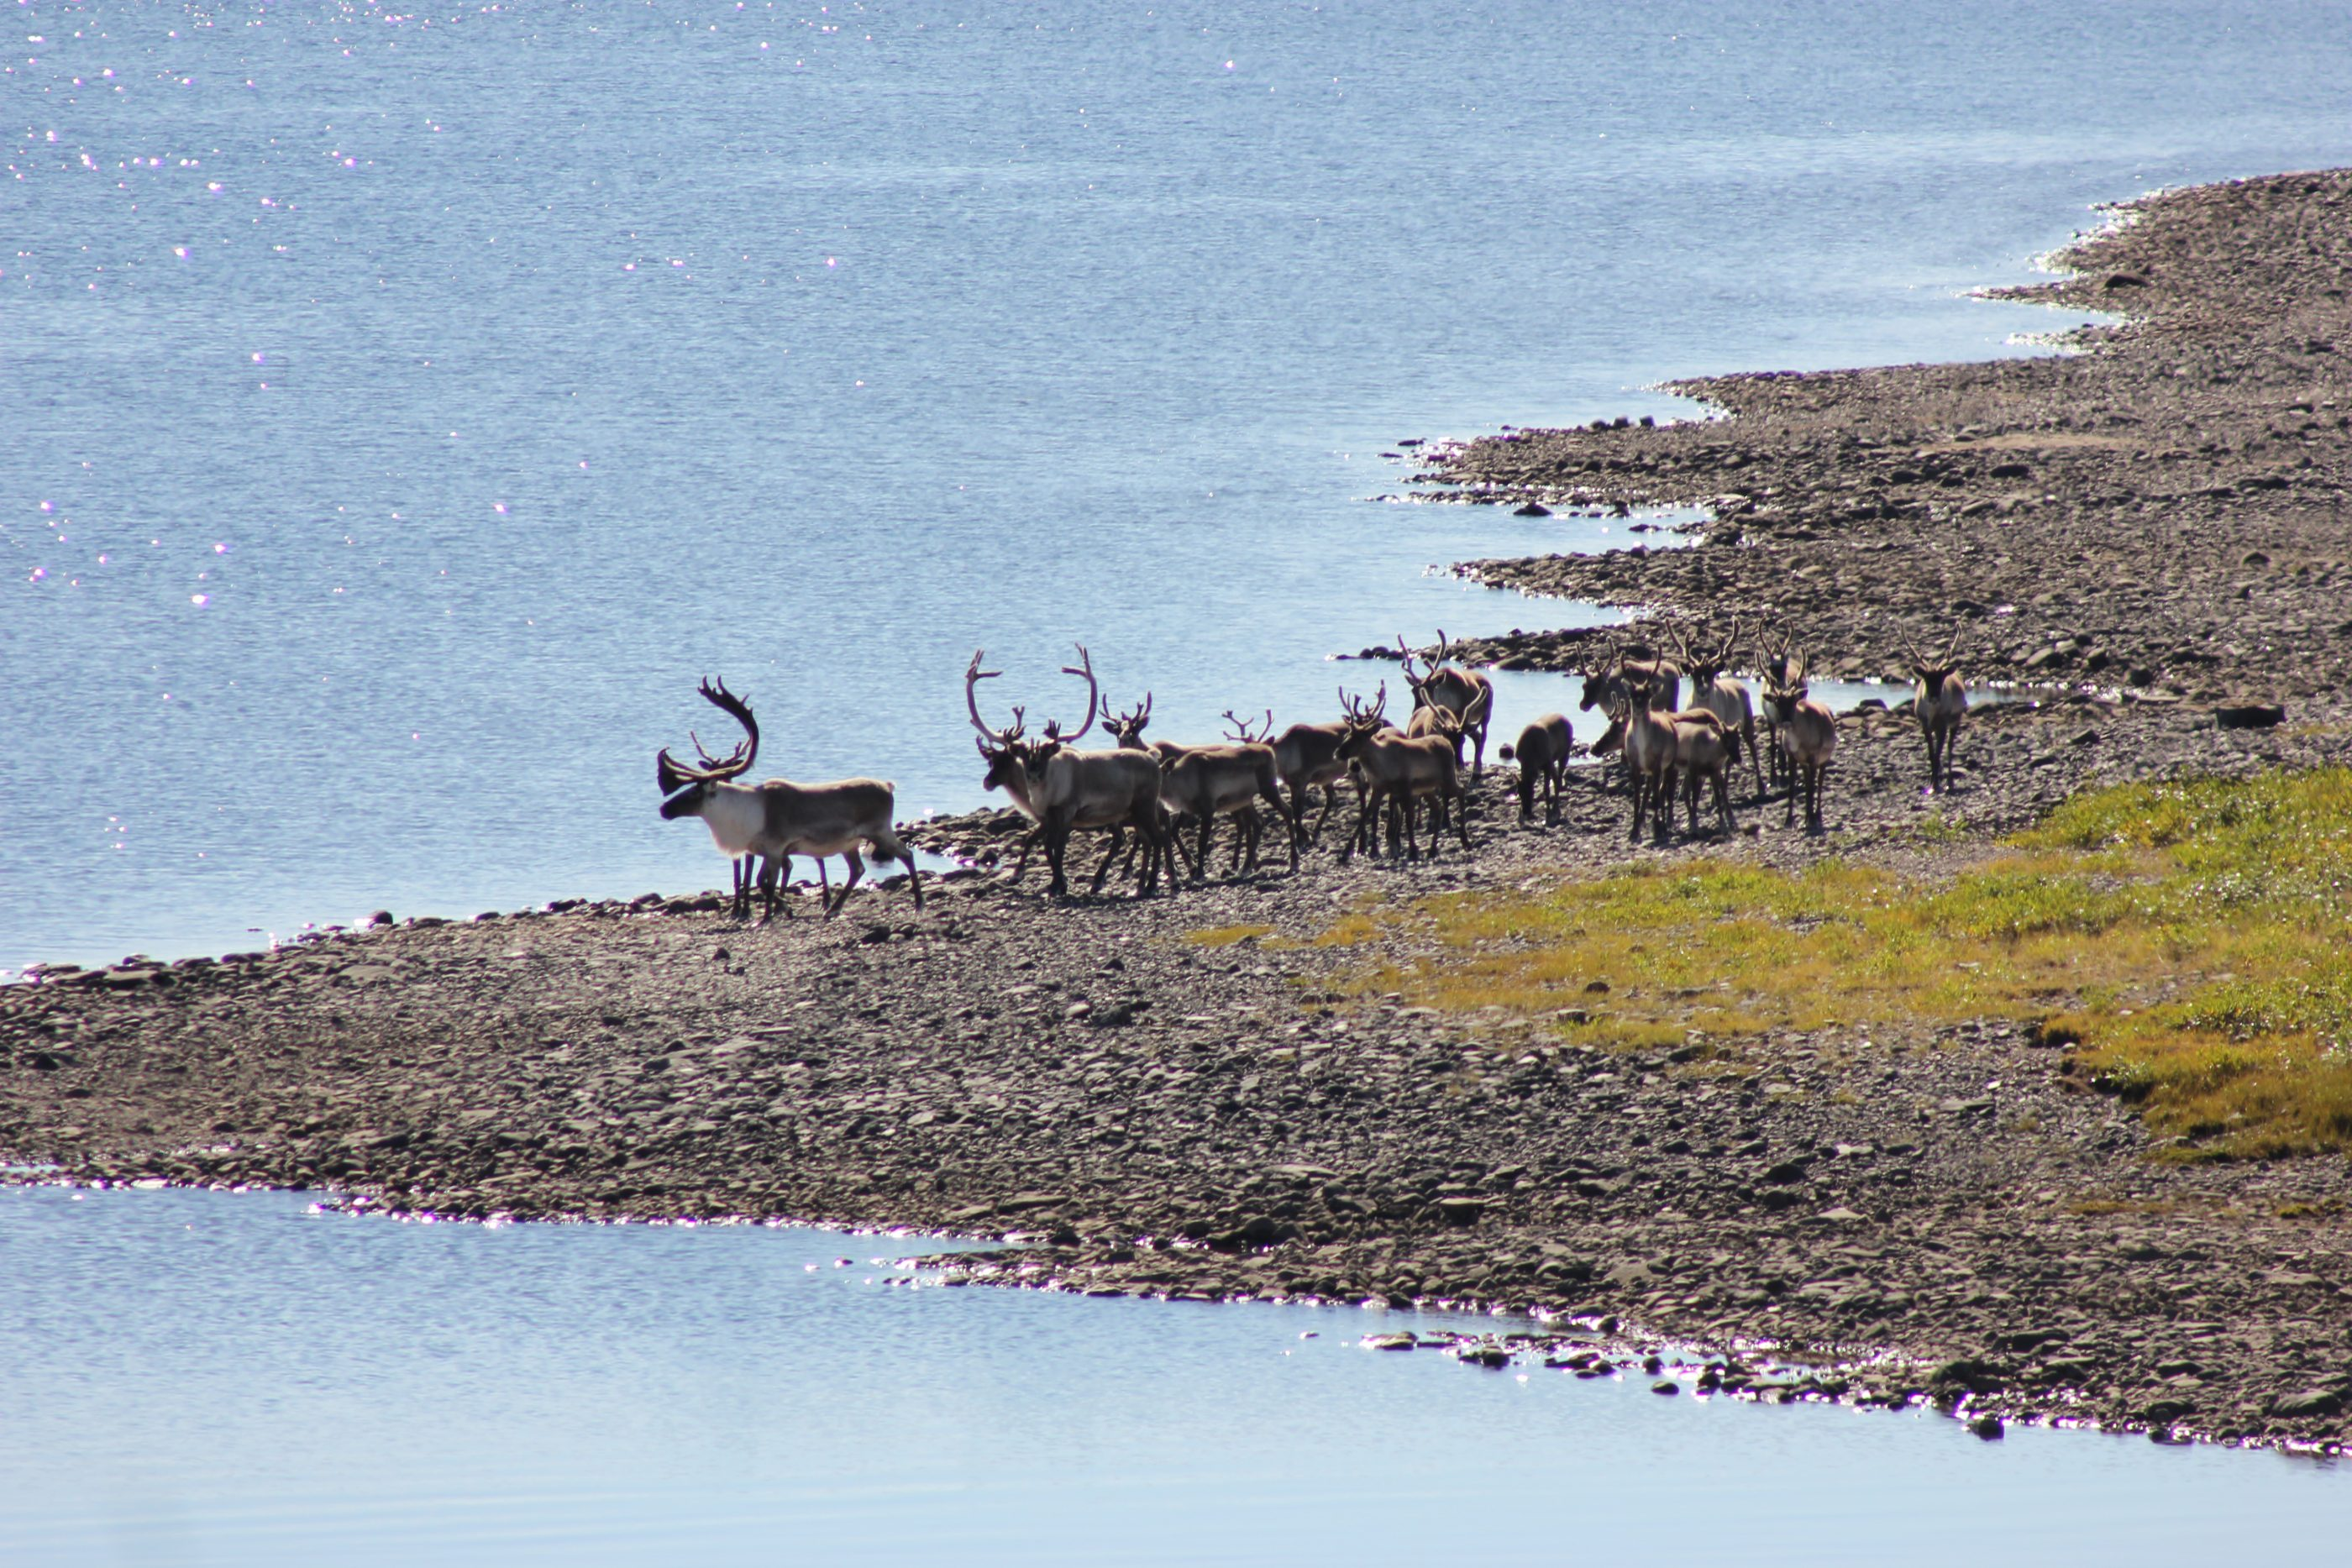 Caribou along the coast of Eeyou Istchee